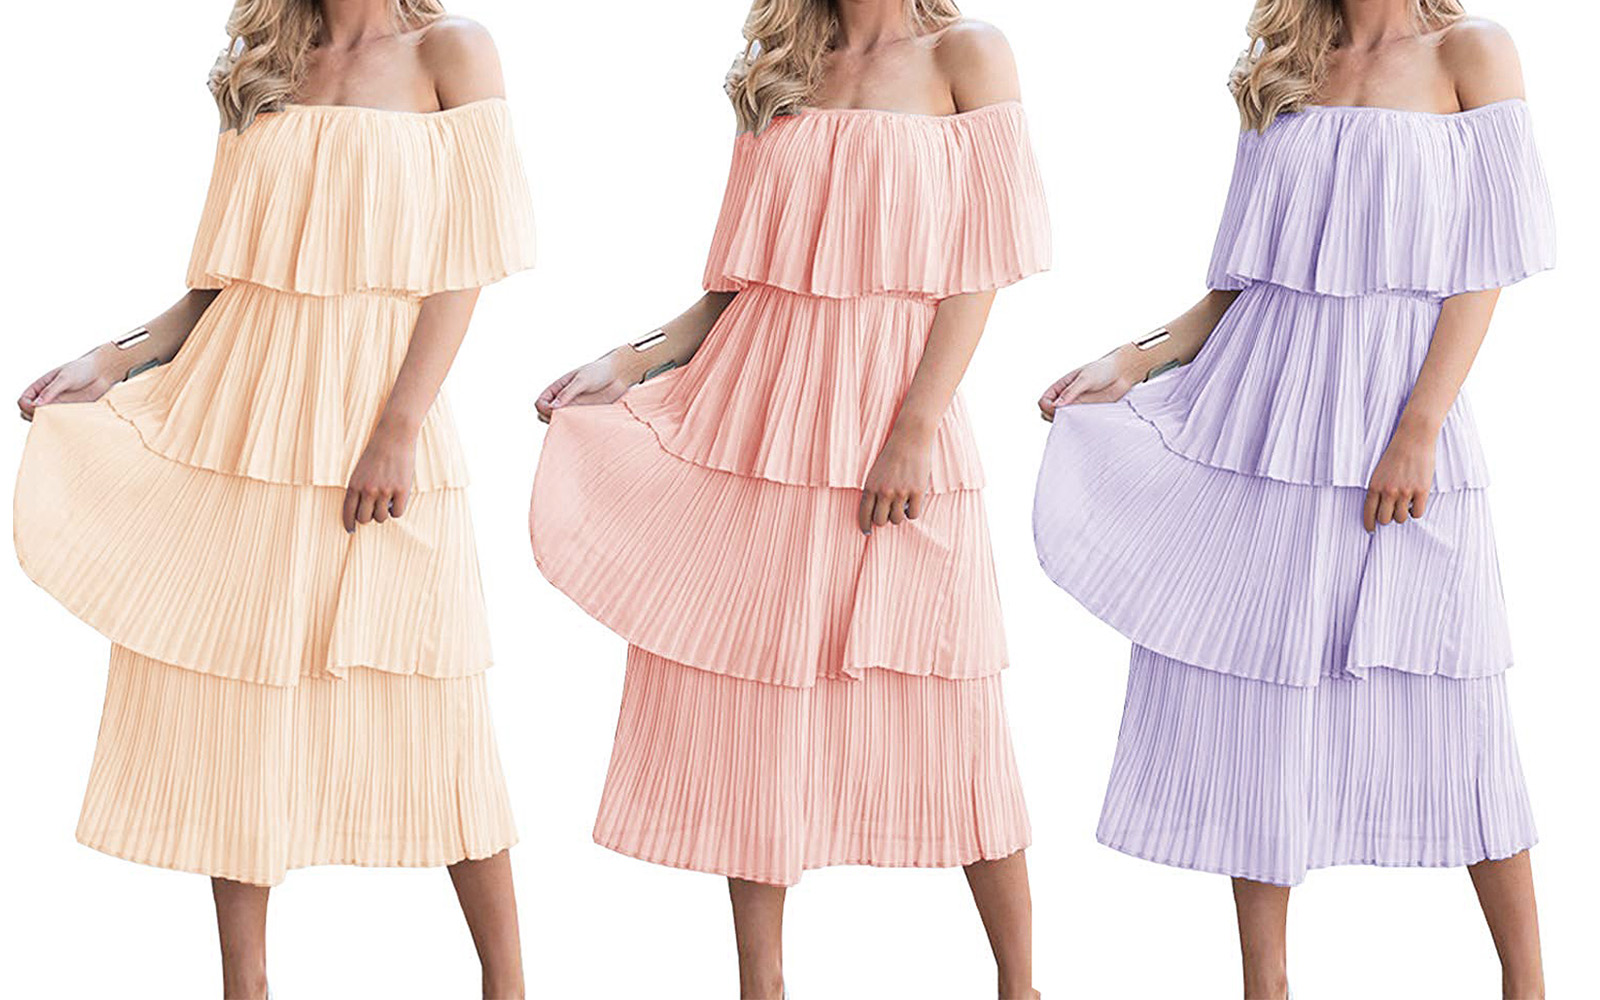 This $24 Viral Dress is Perfect to Wear to a Summer Wedding